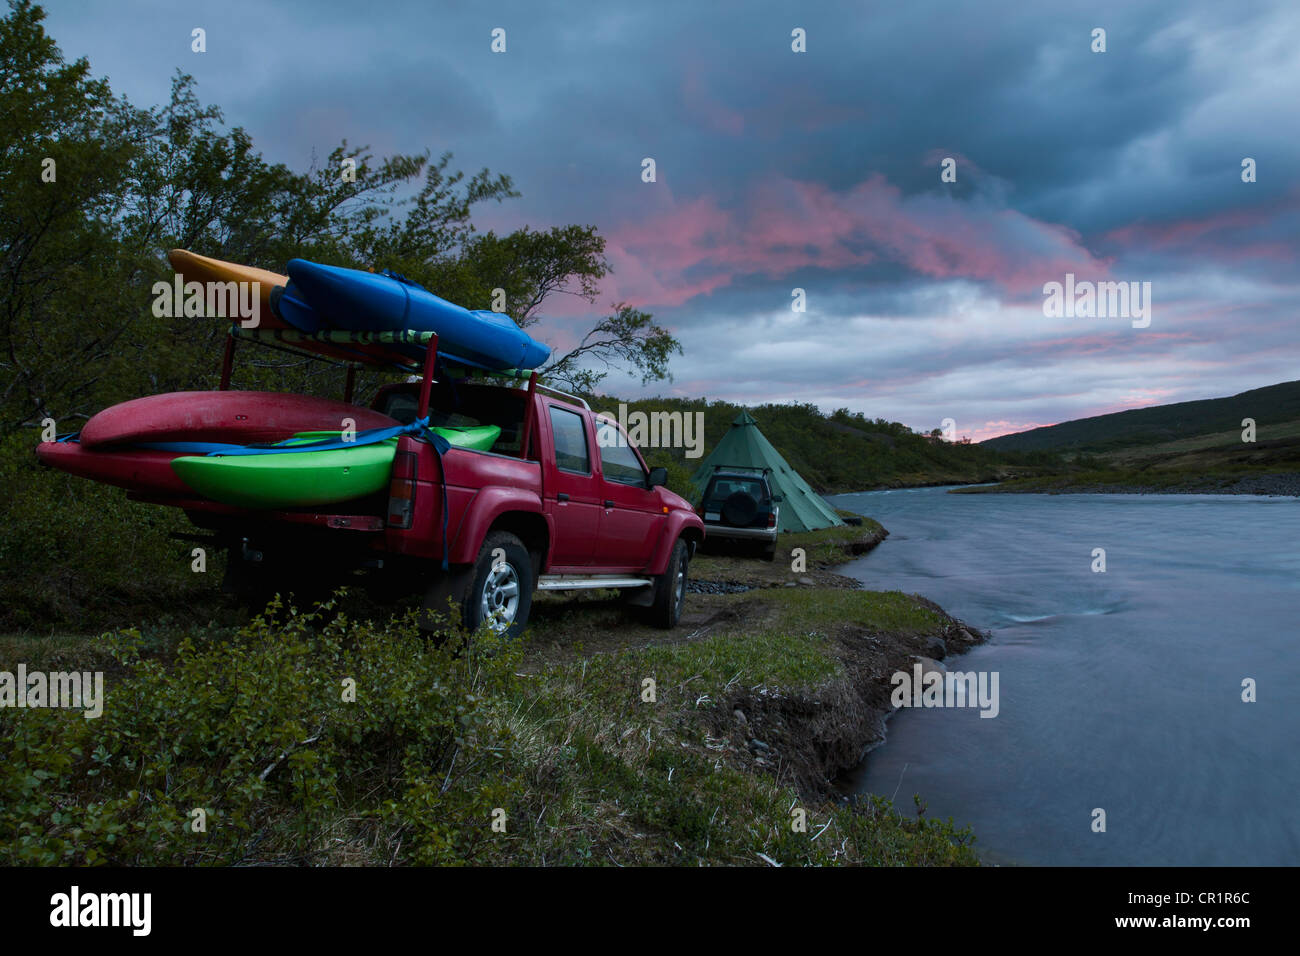 Canoes on truck bed by rural river Stock Photo